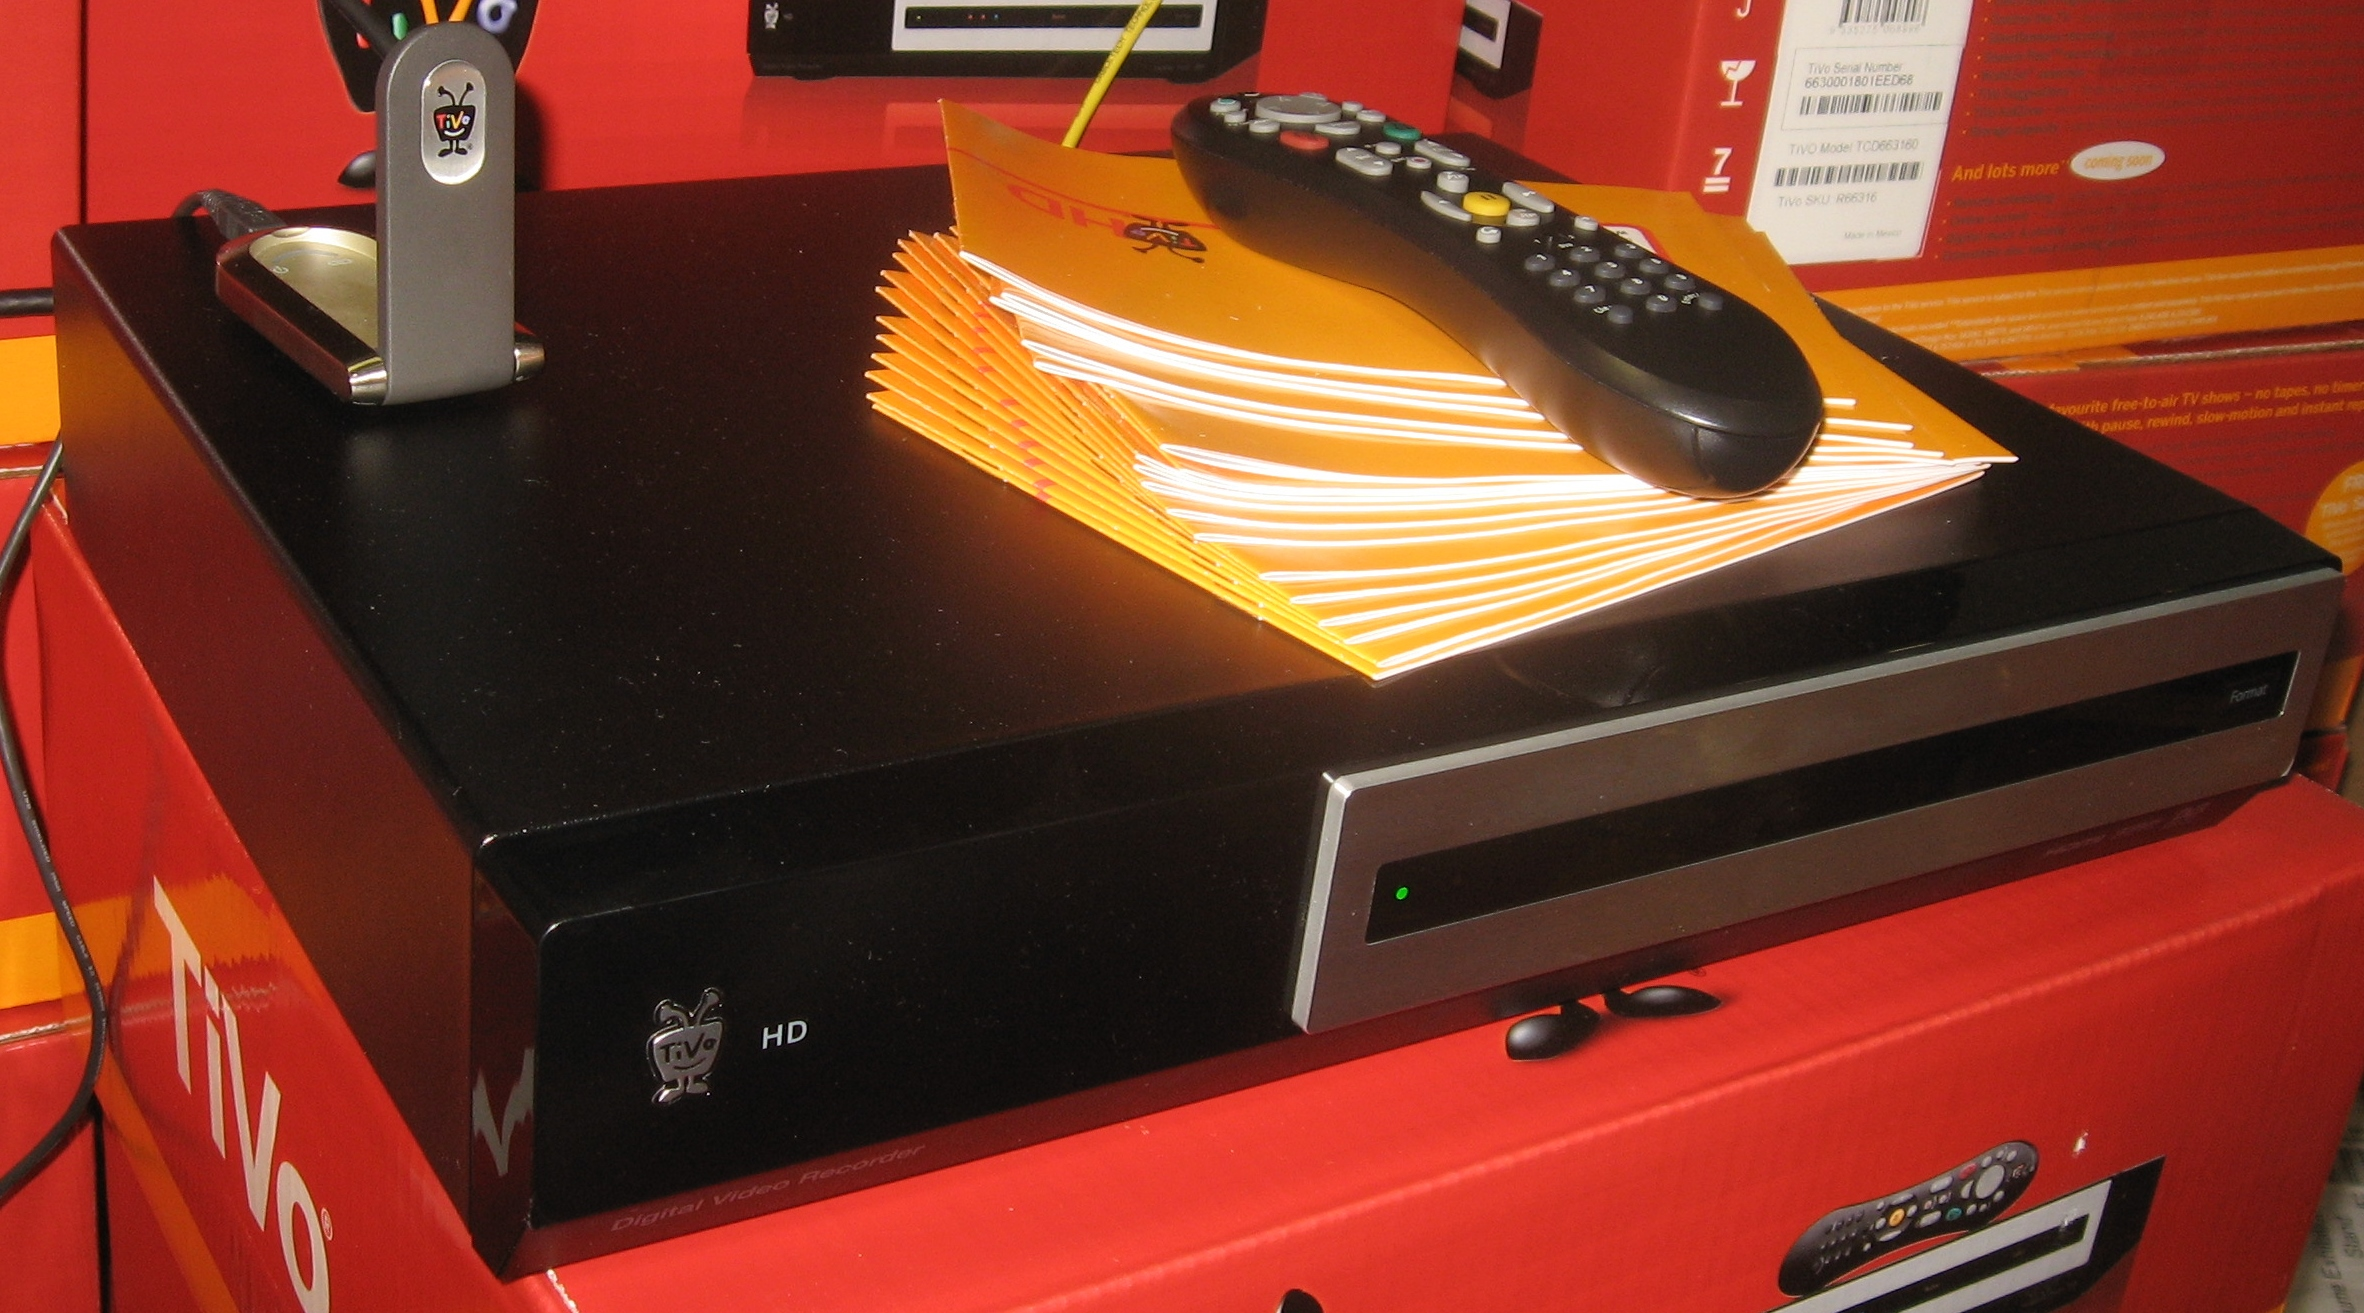 """Set top boxes could work as the hub of an """"Internet Of Things"""" network"""